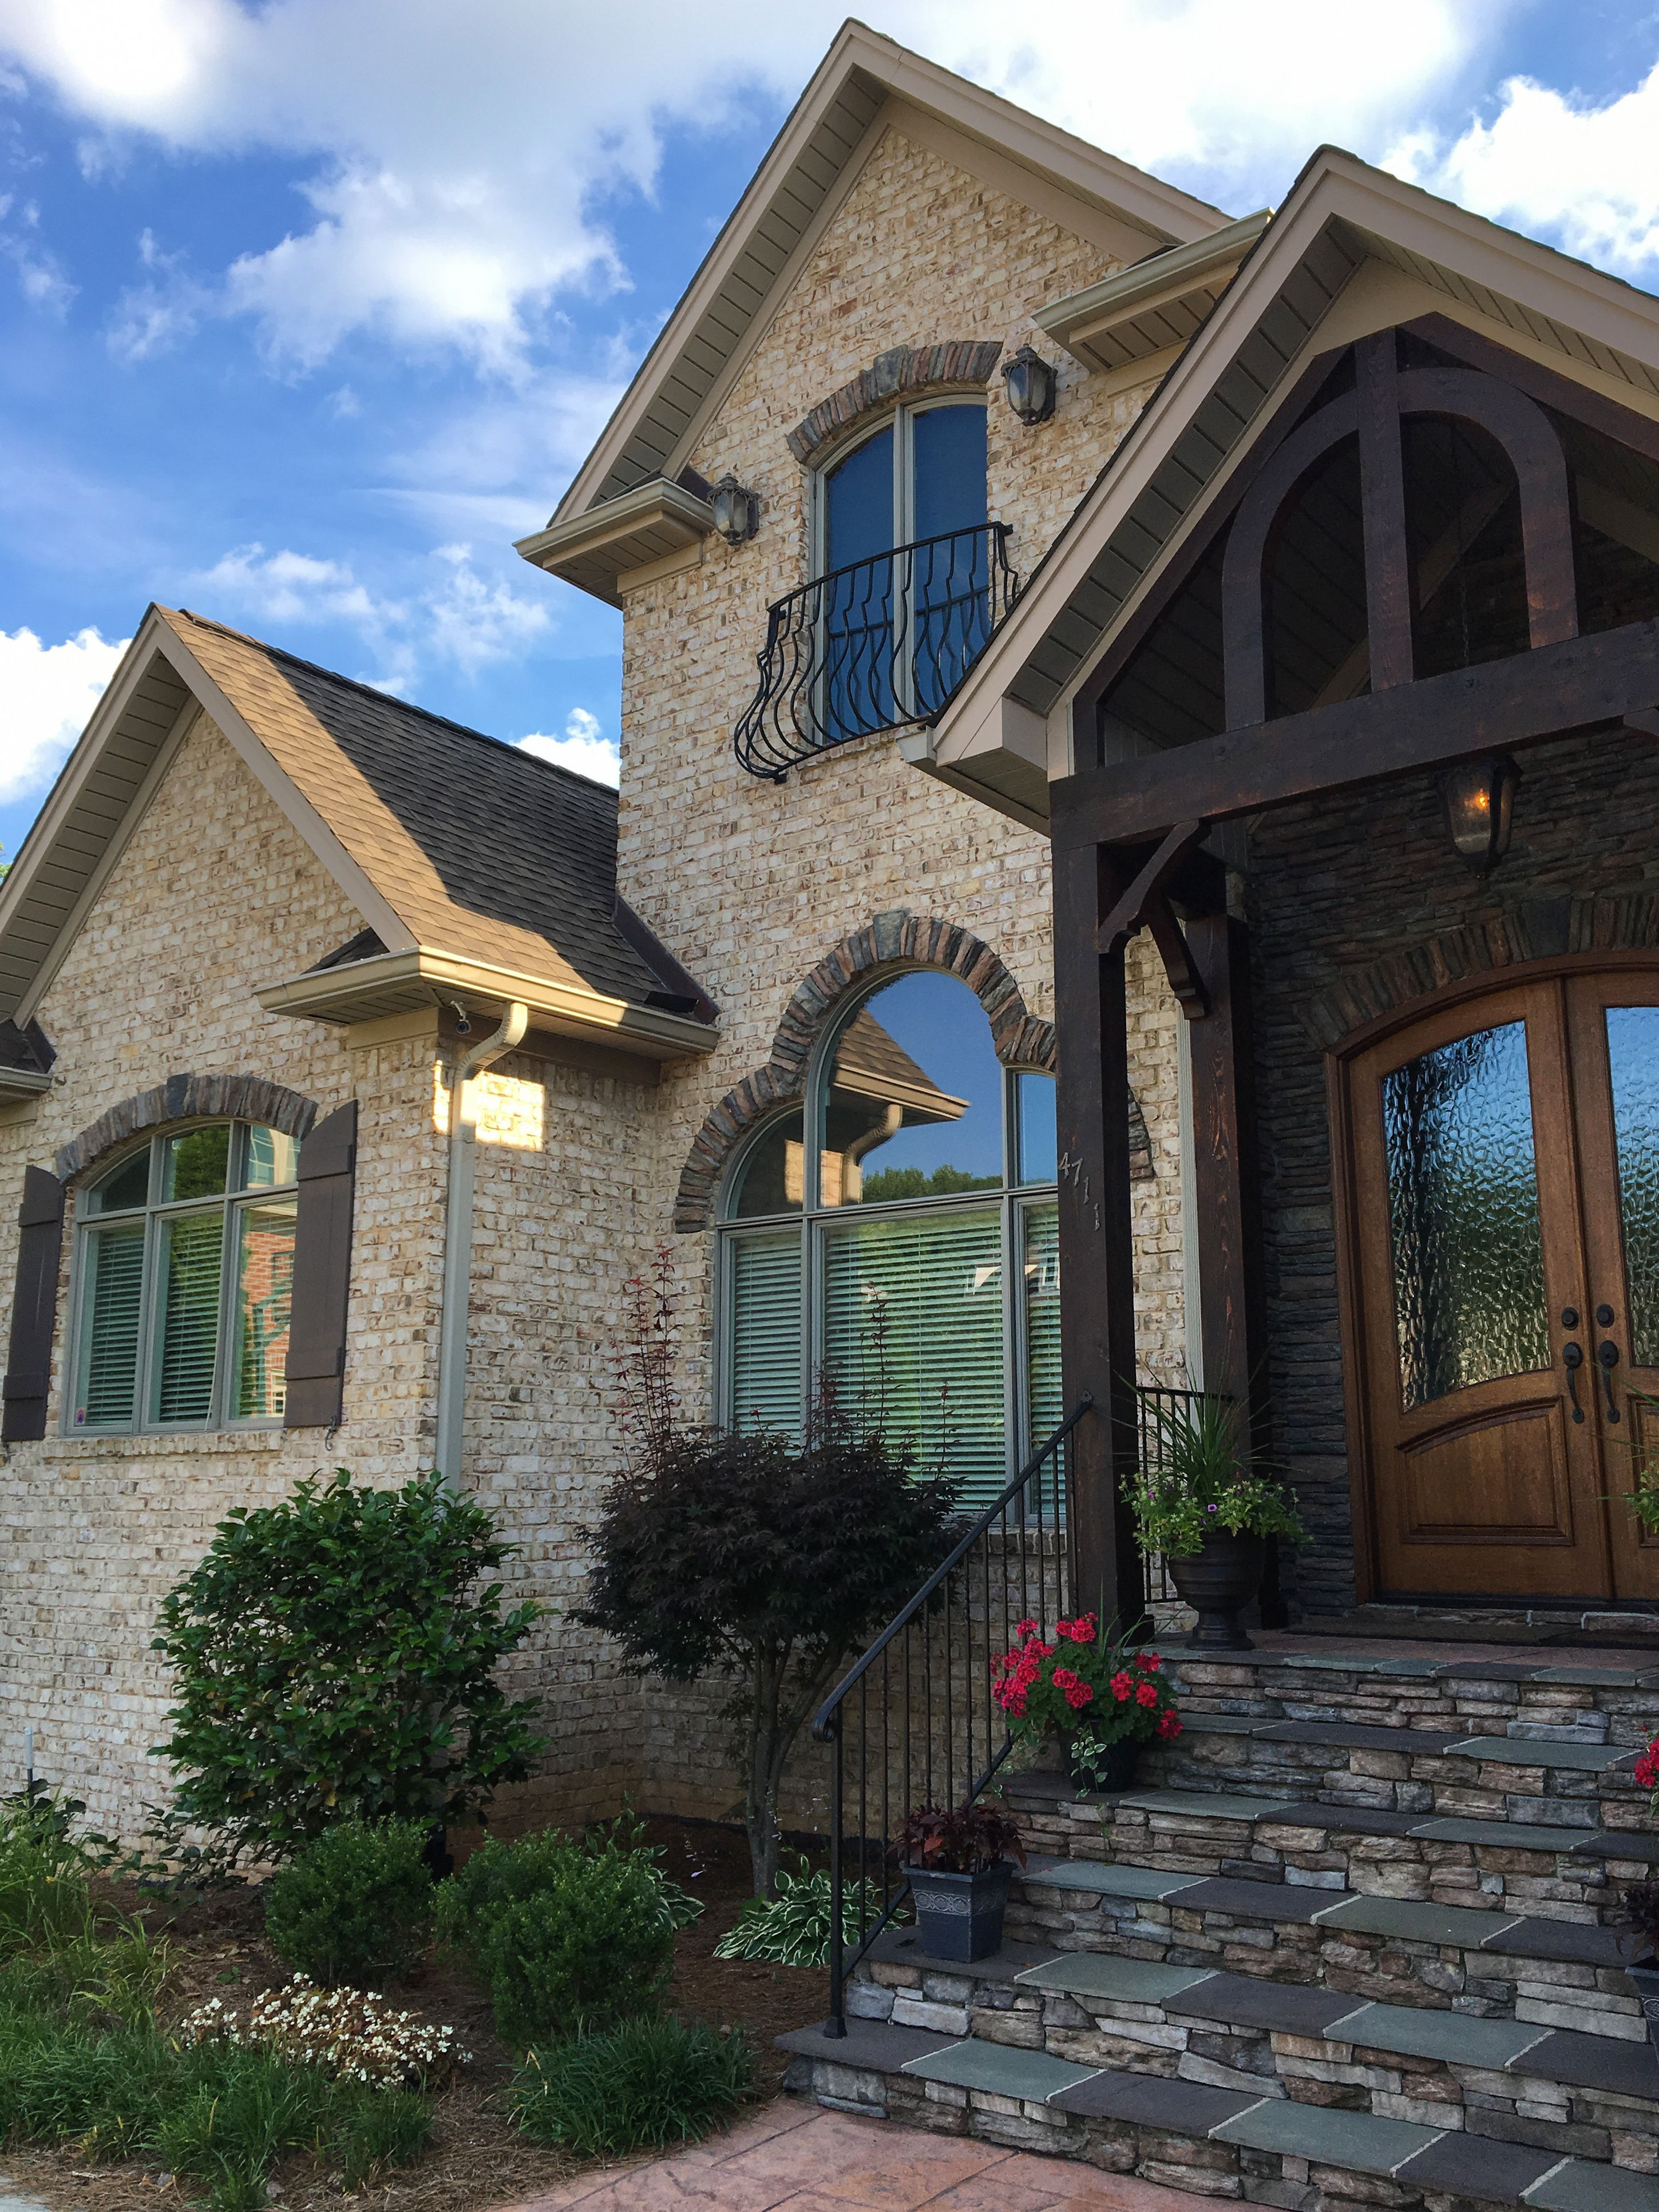 Pictures Of Stone Houses Designs Inspirational See How Versatile Brick Can Be when Paired with Stone